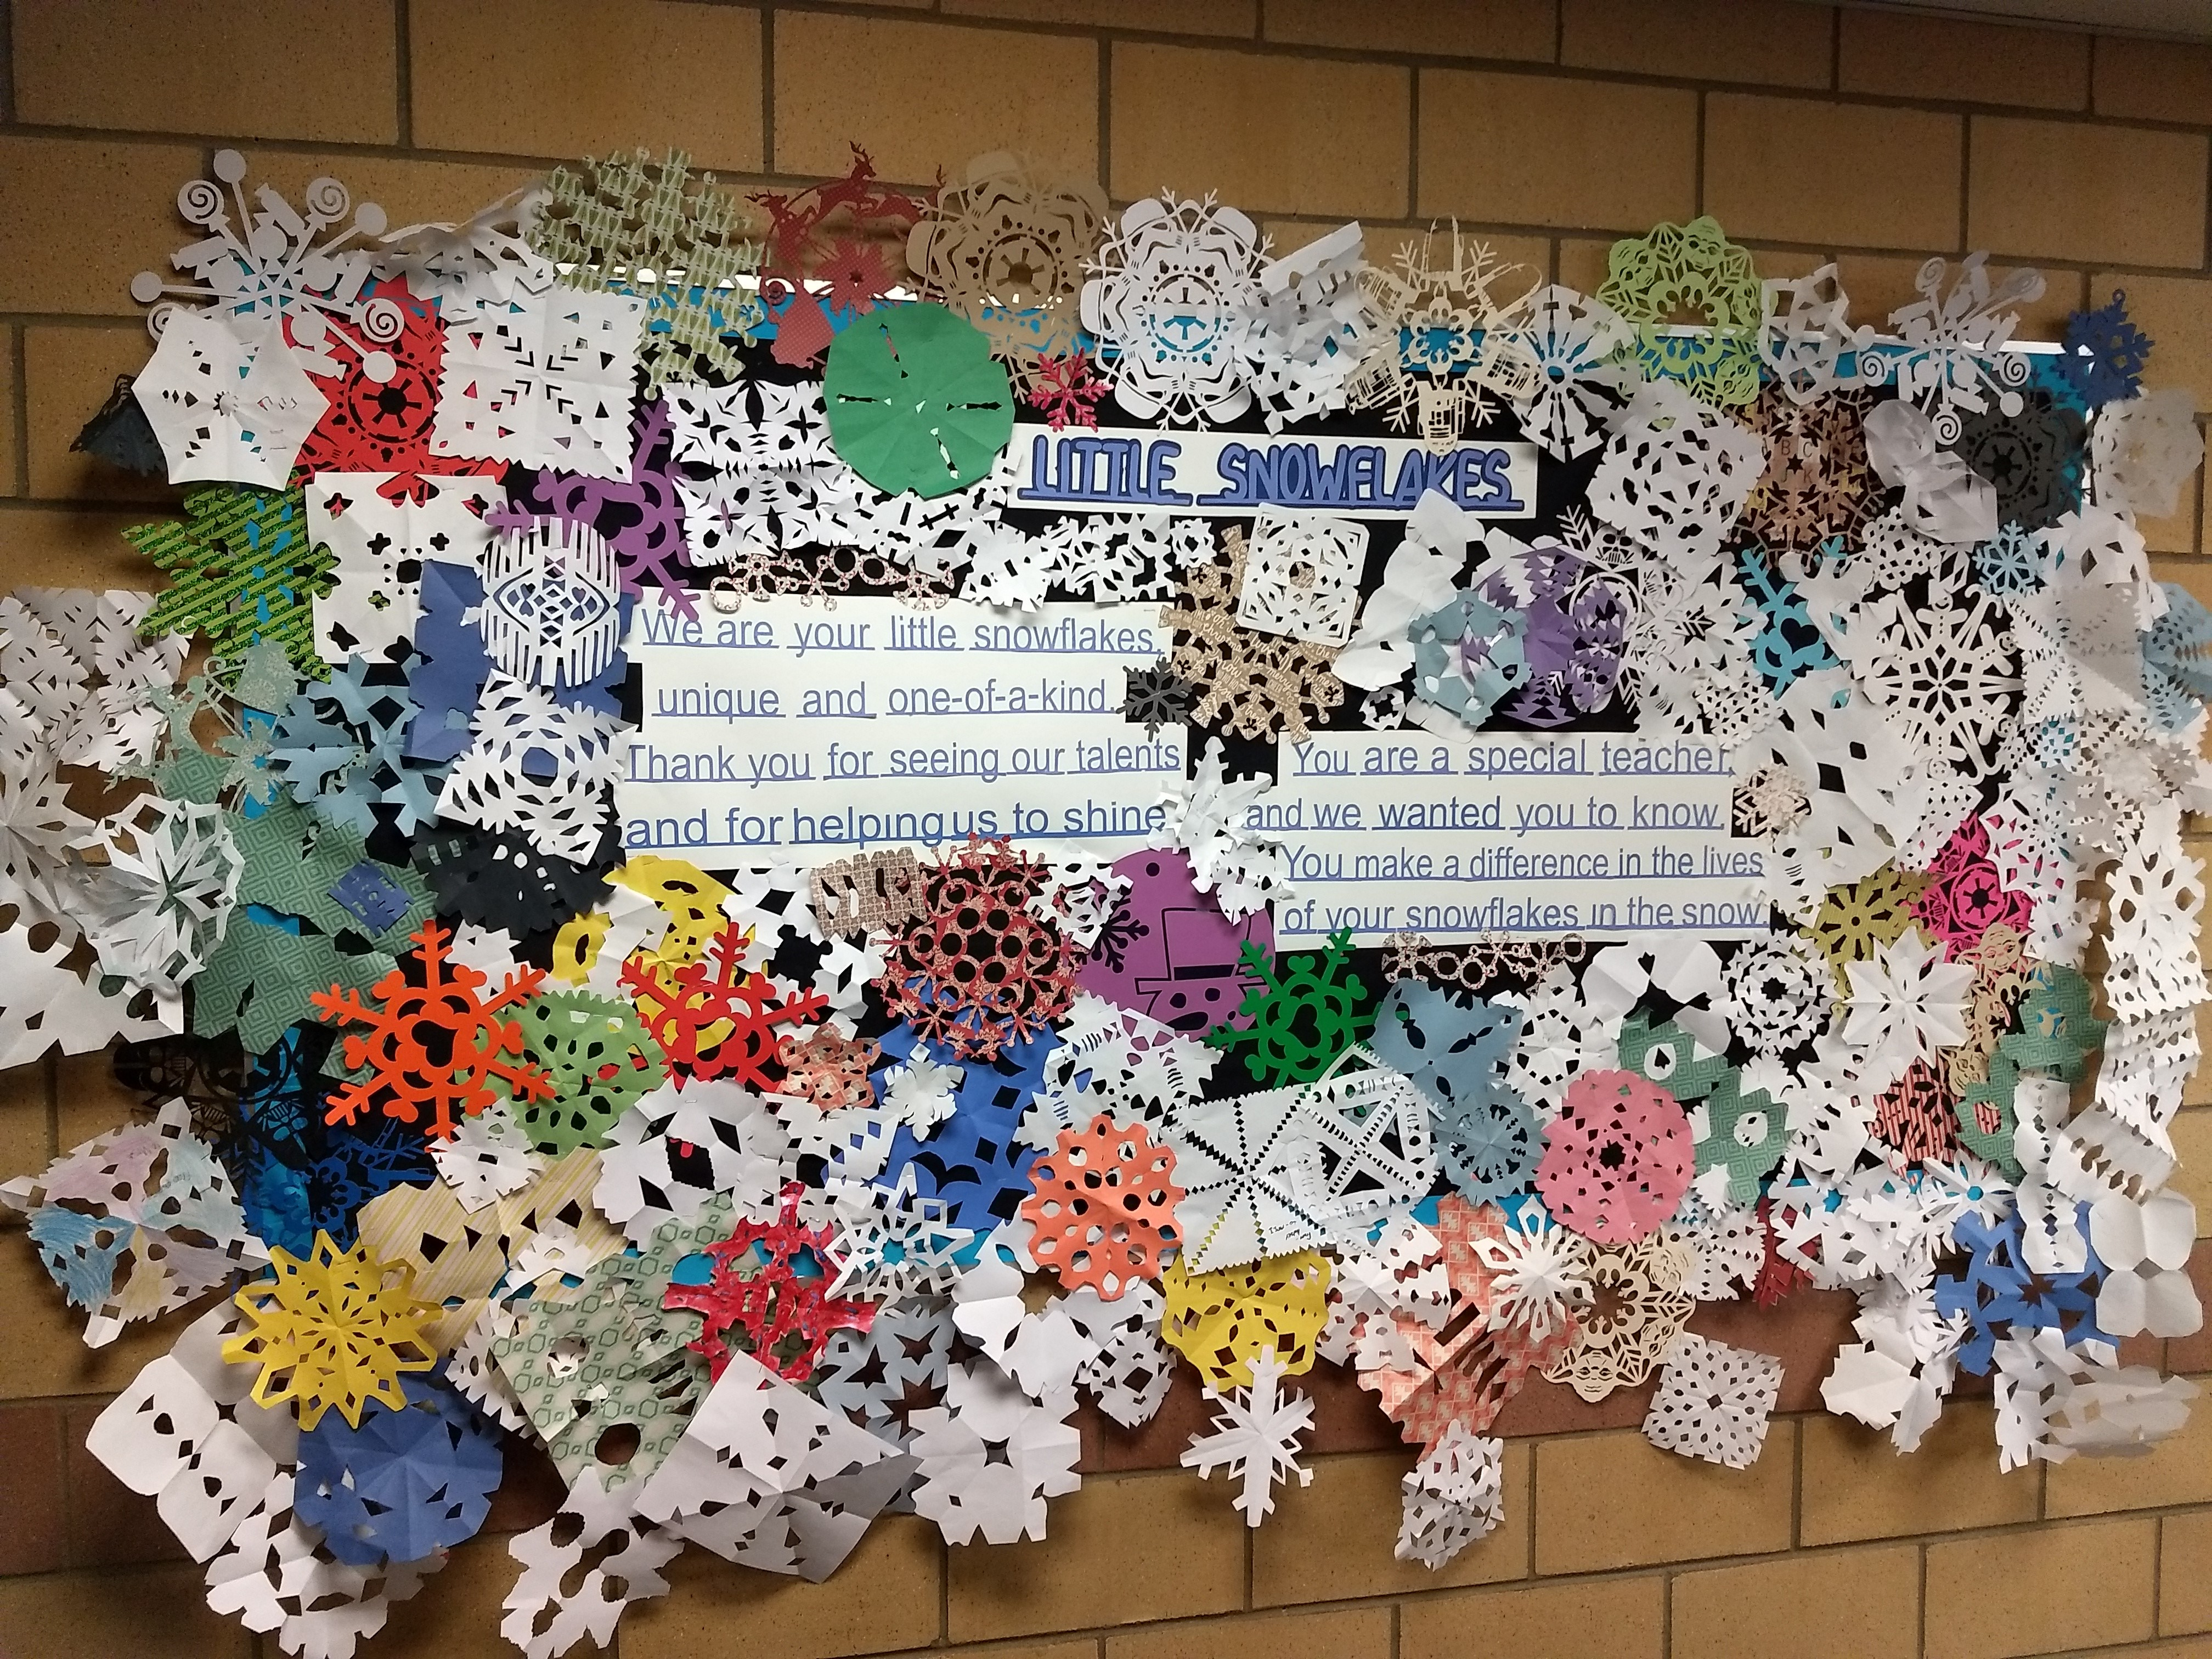 Bulletin board at Kruse Elementary displaying many paper snowflakes.